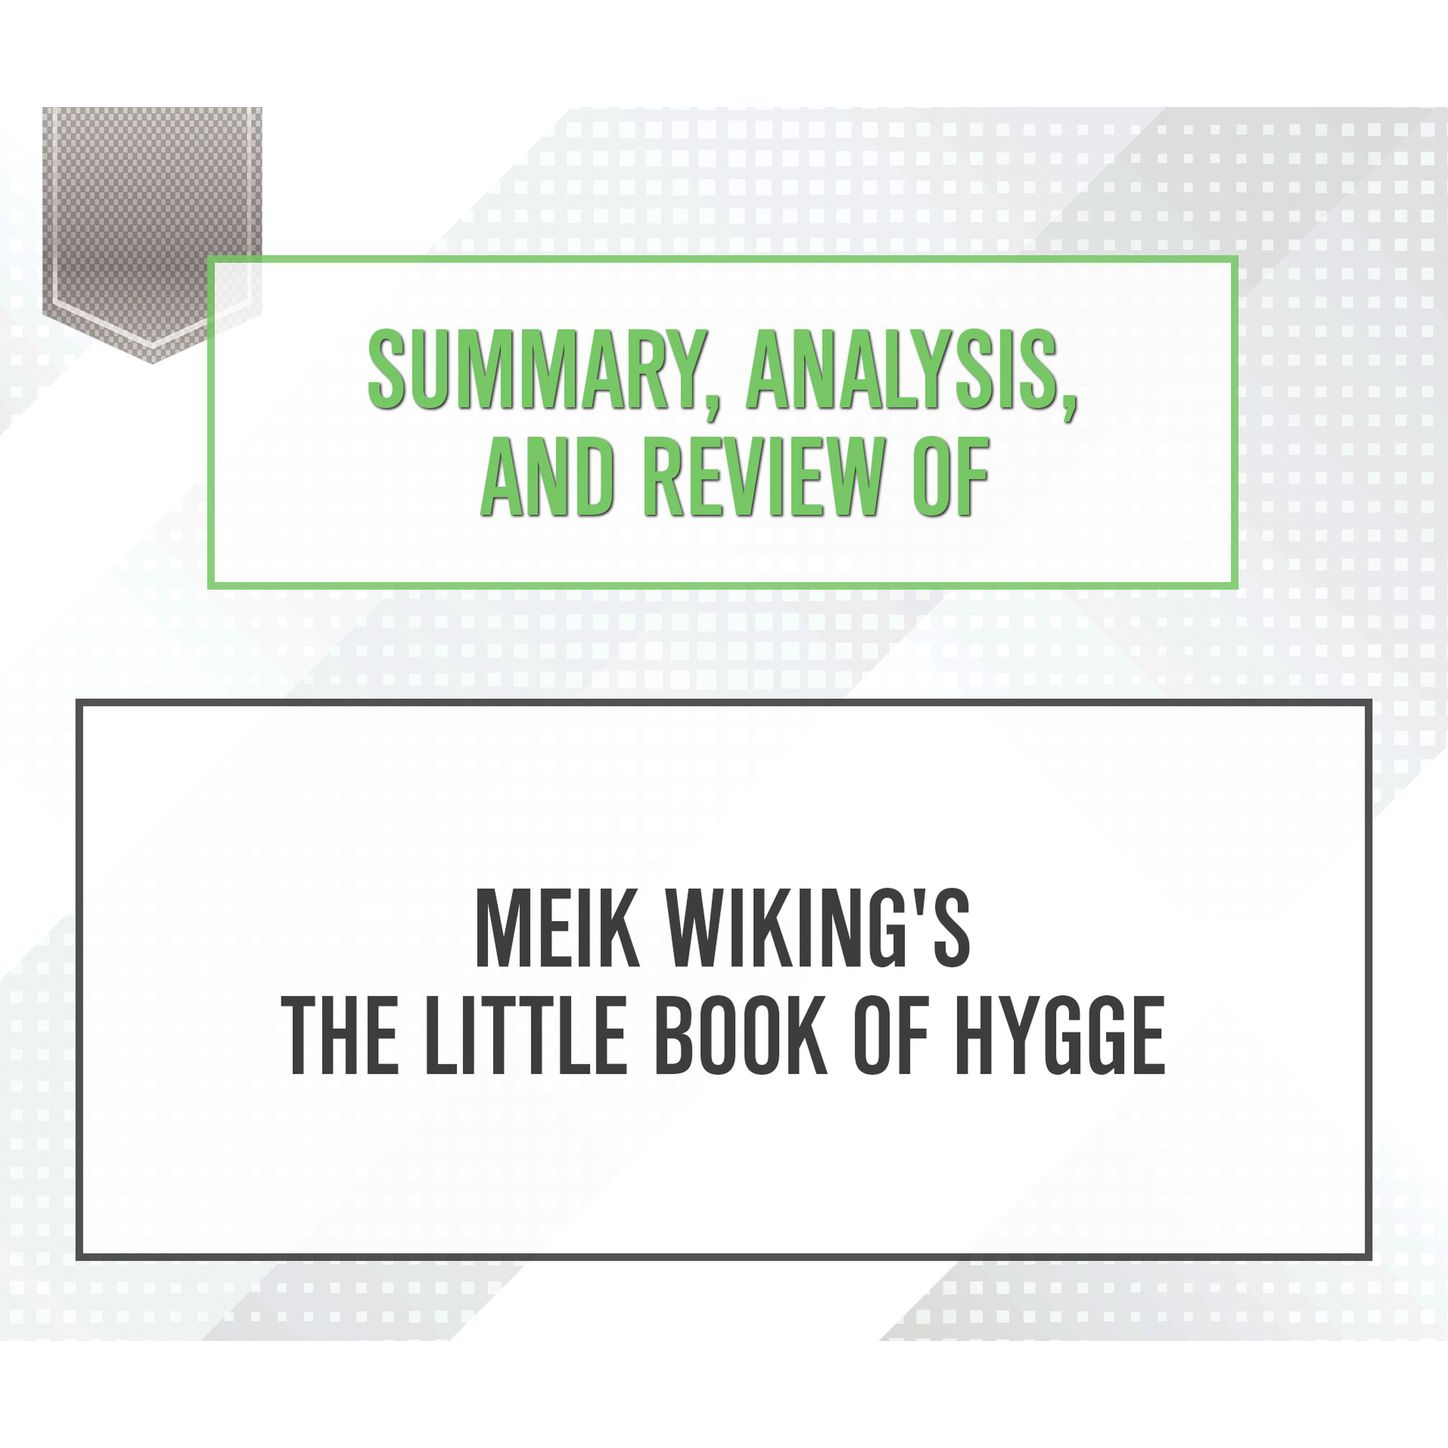 Start Publishing Notes Summary, Analysis, and Review of Meik Wiking's The Little Book of Hygge (Unabridged)